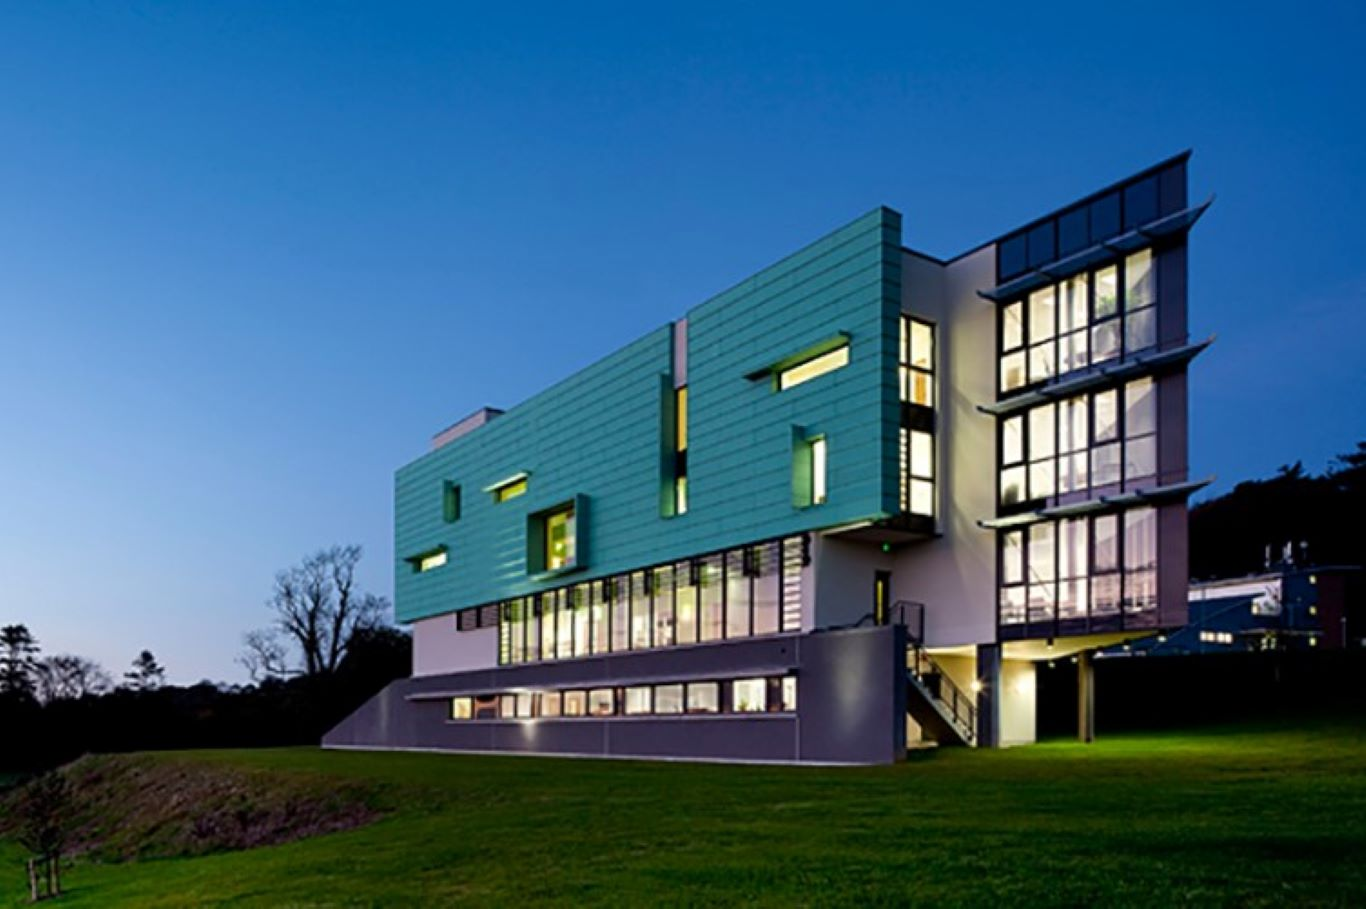 Pictured is the TSSG Netlabs building on WIT's West Campus at Carriganore, Waterford